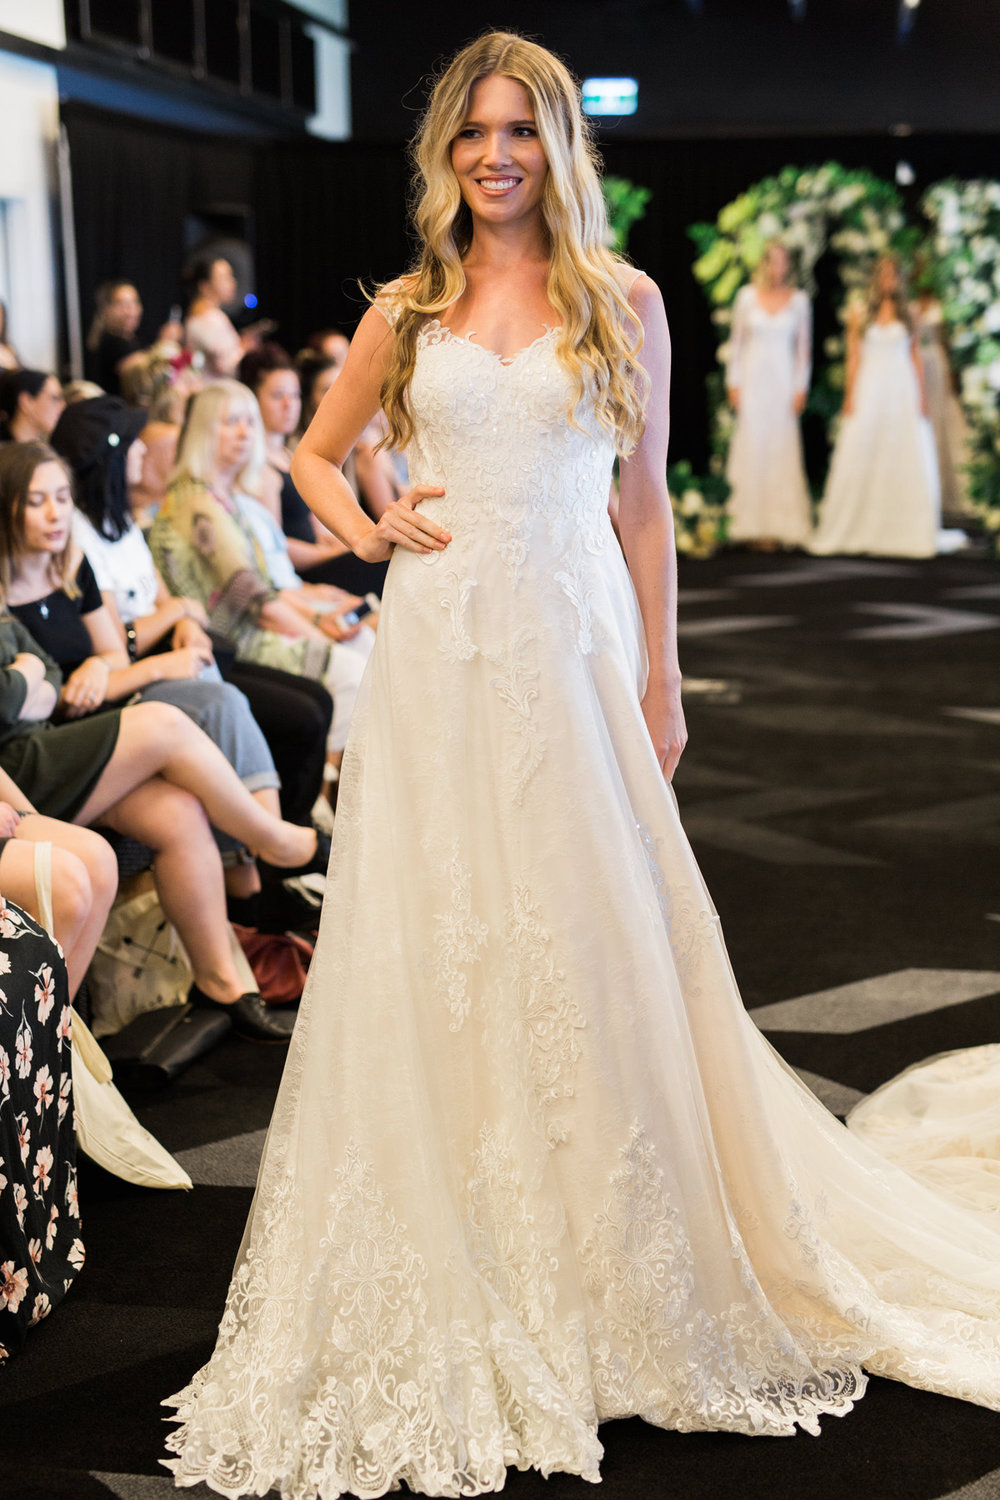 Love-Wedding-Festival-Sydney-Wedding-Gown-Jean-Fox-Bridal-20.jpg